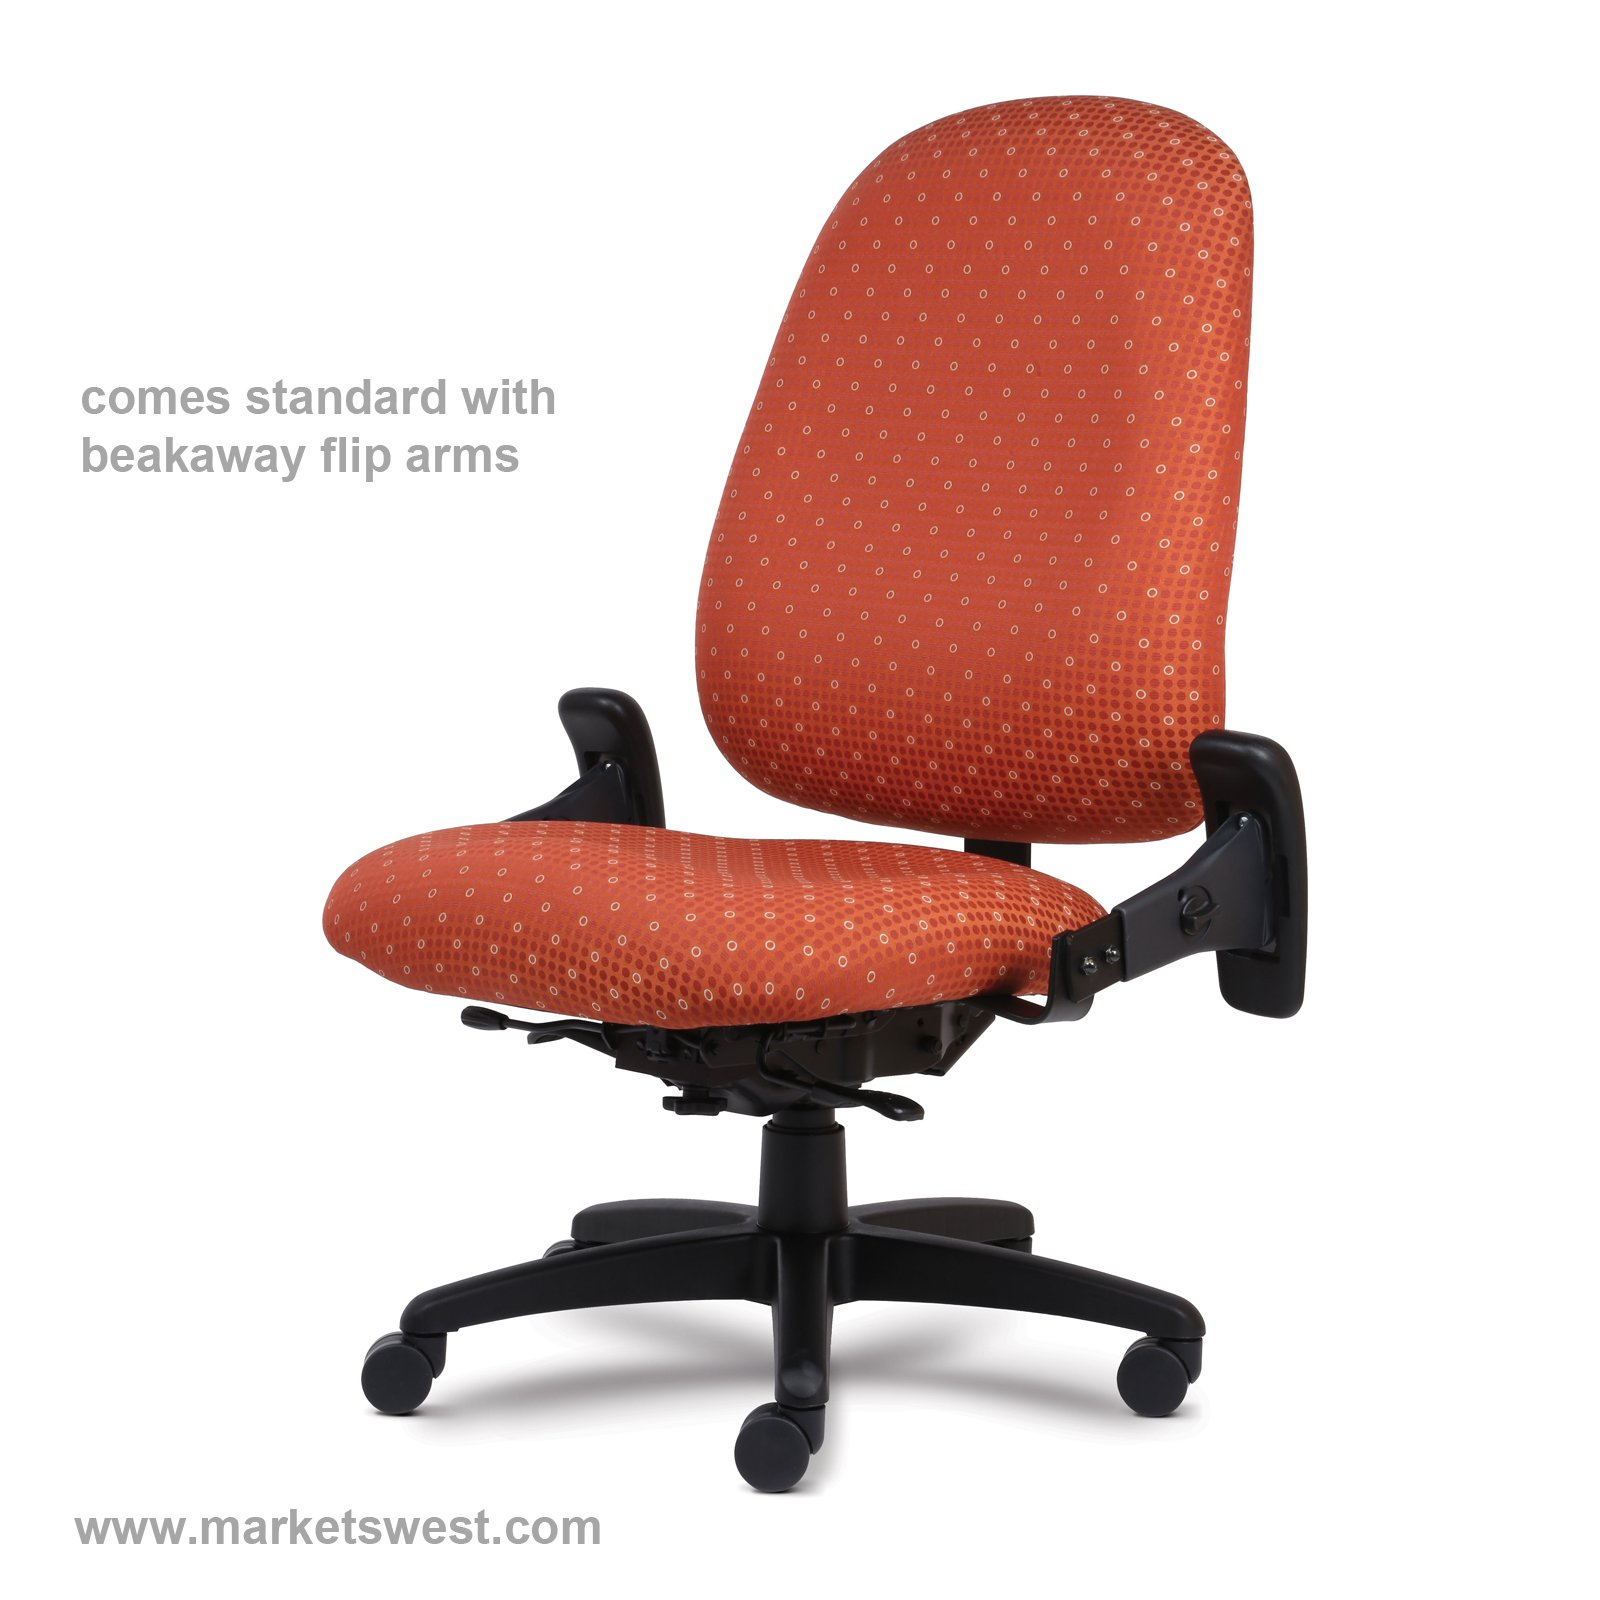 ergonomic chair under 500 diy outdoor cushion covers 2 inspirational heavy duty office chairs 500lbs rtty1